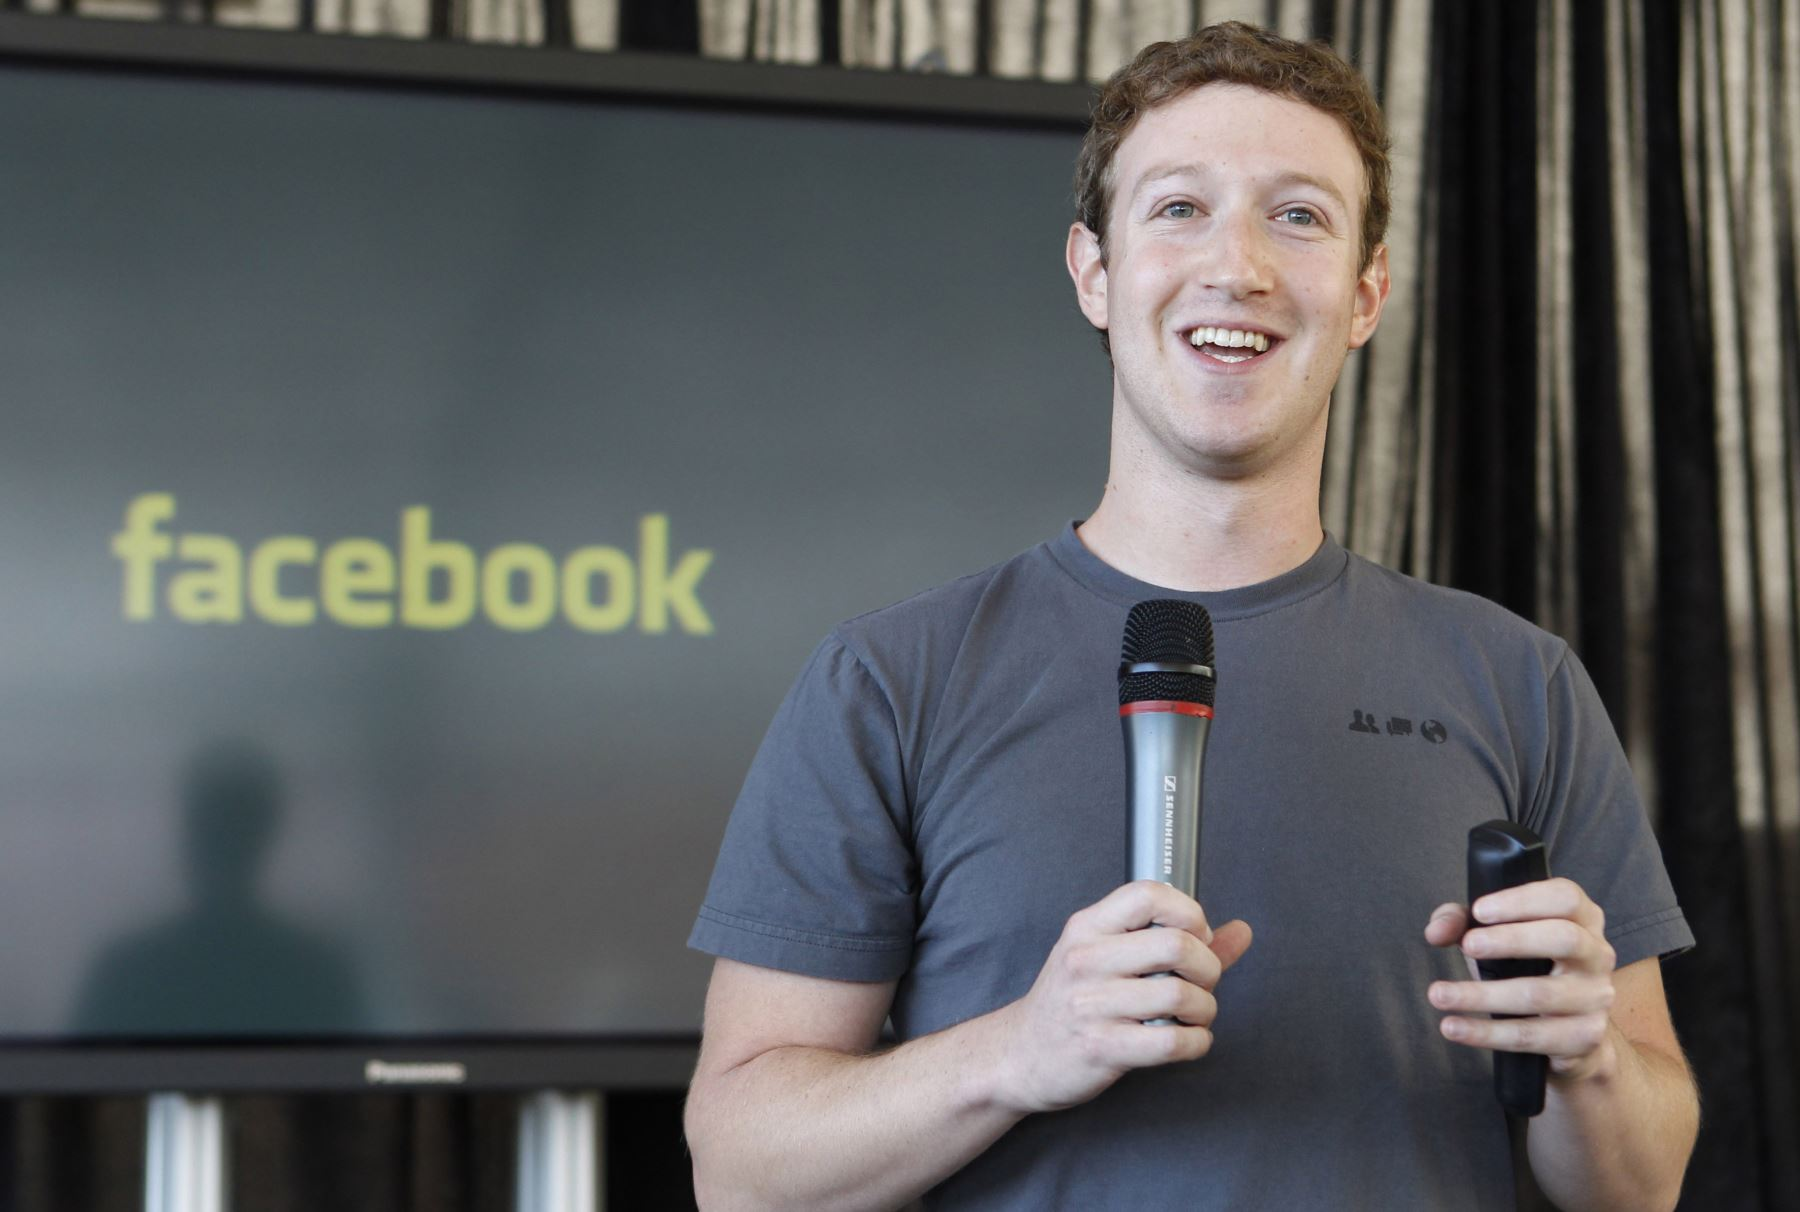 Mark Zuckerberg, creador de la red social Facebook